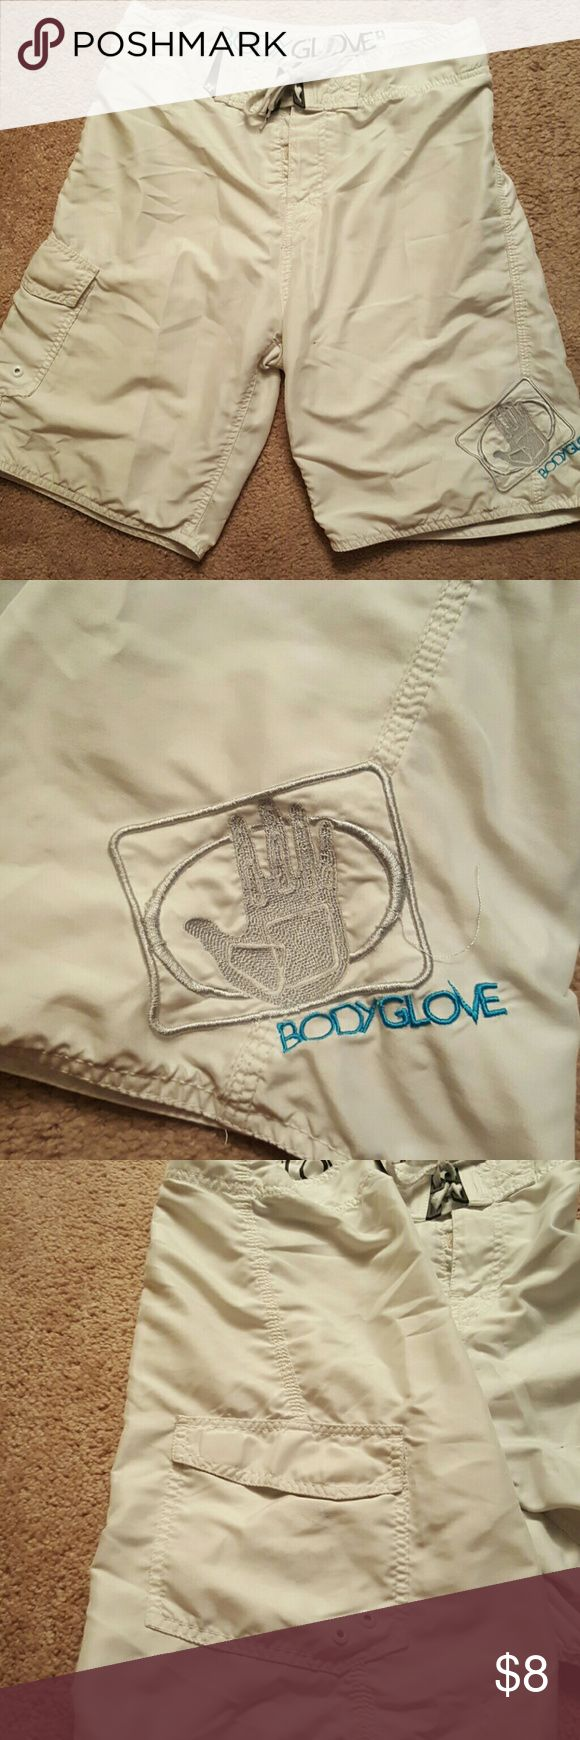 2 Men's bodyglove board shorts sz 28 (S/M) Gently worn men's swim board shorts with side pocket, velcro & tie closure. 4 way stretch with back zip pocket. Great condition.  (Can buy 1 for $5 of want, leave in comments) Body Glove Swim Board Shorts